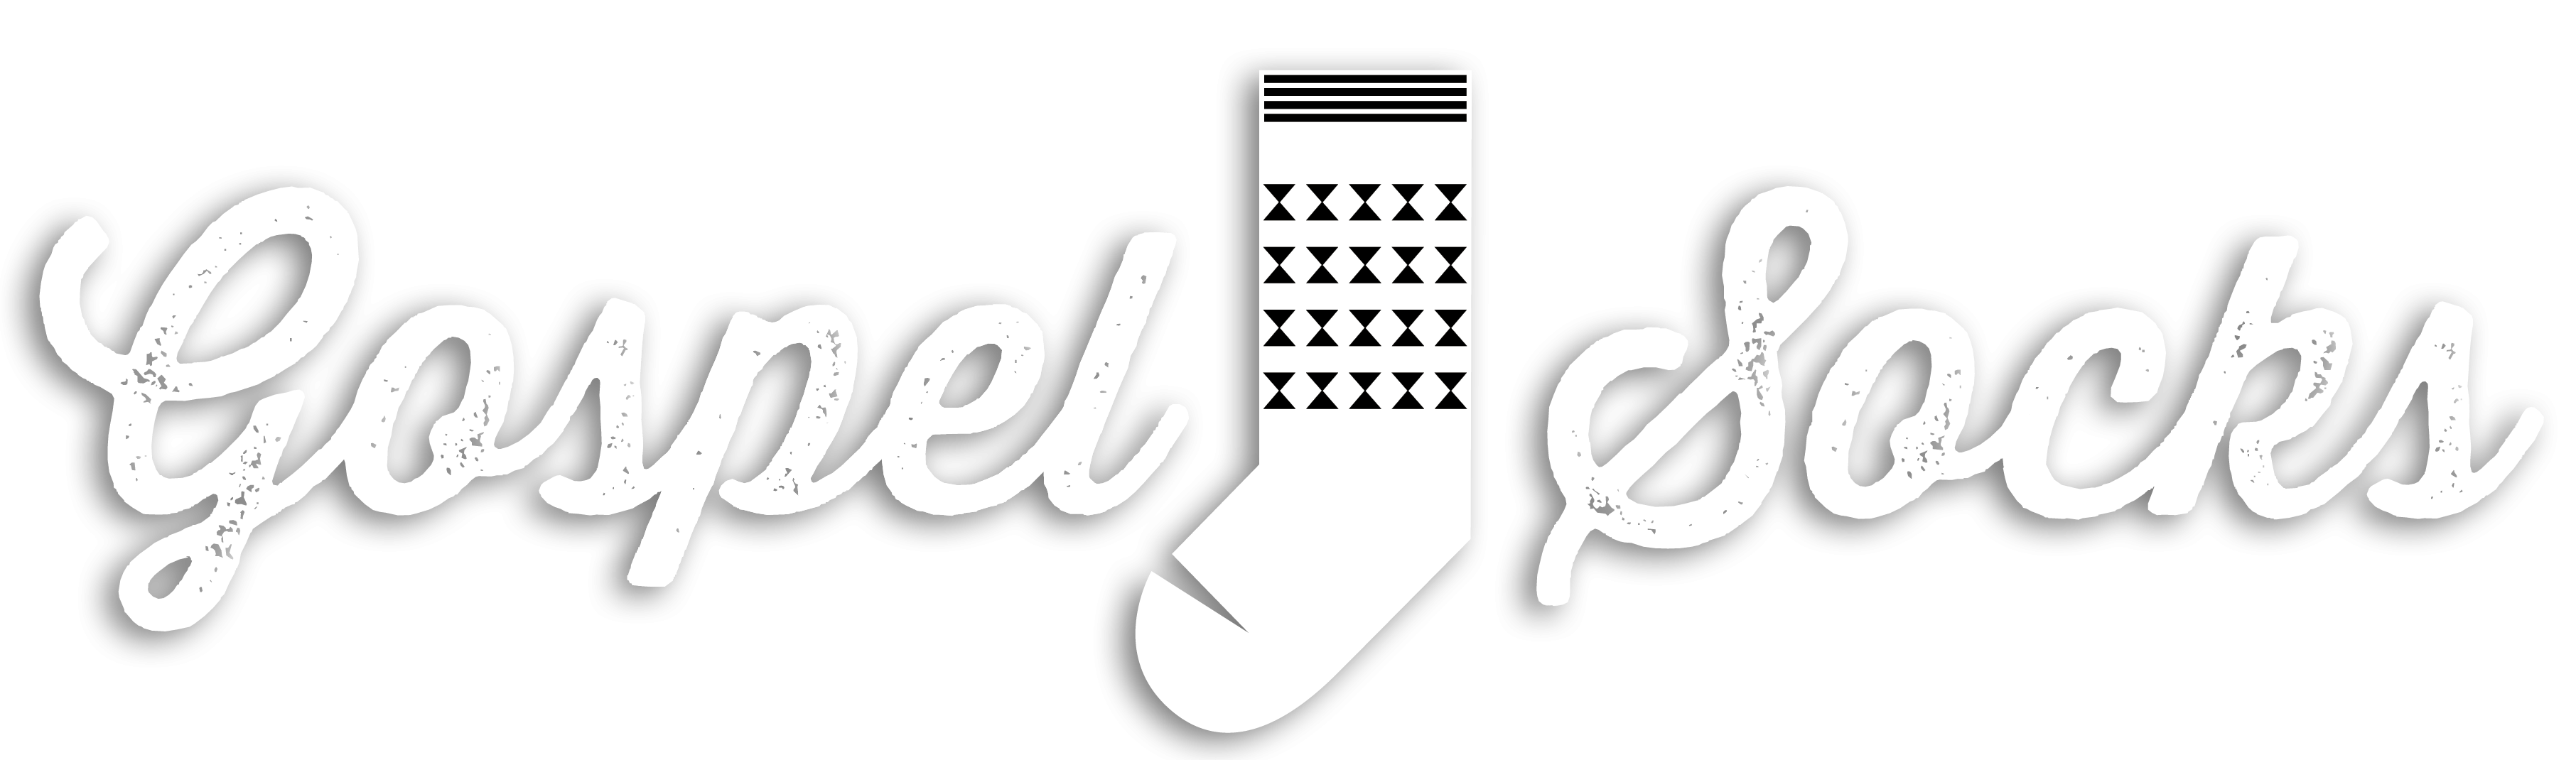 Gospel Socks